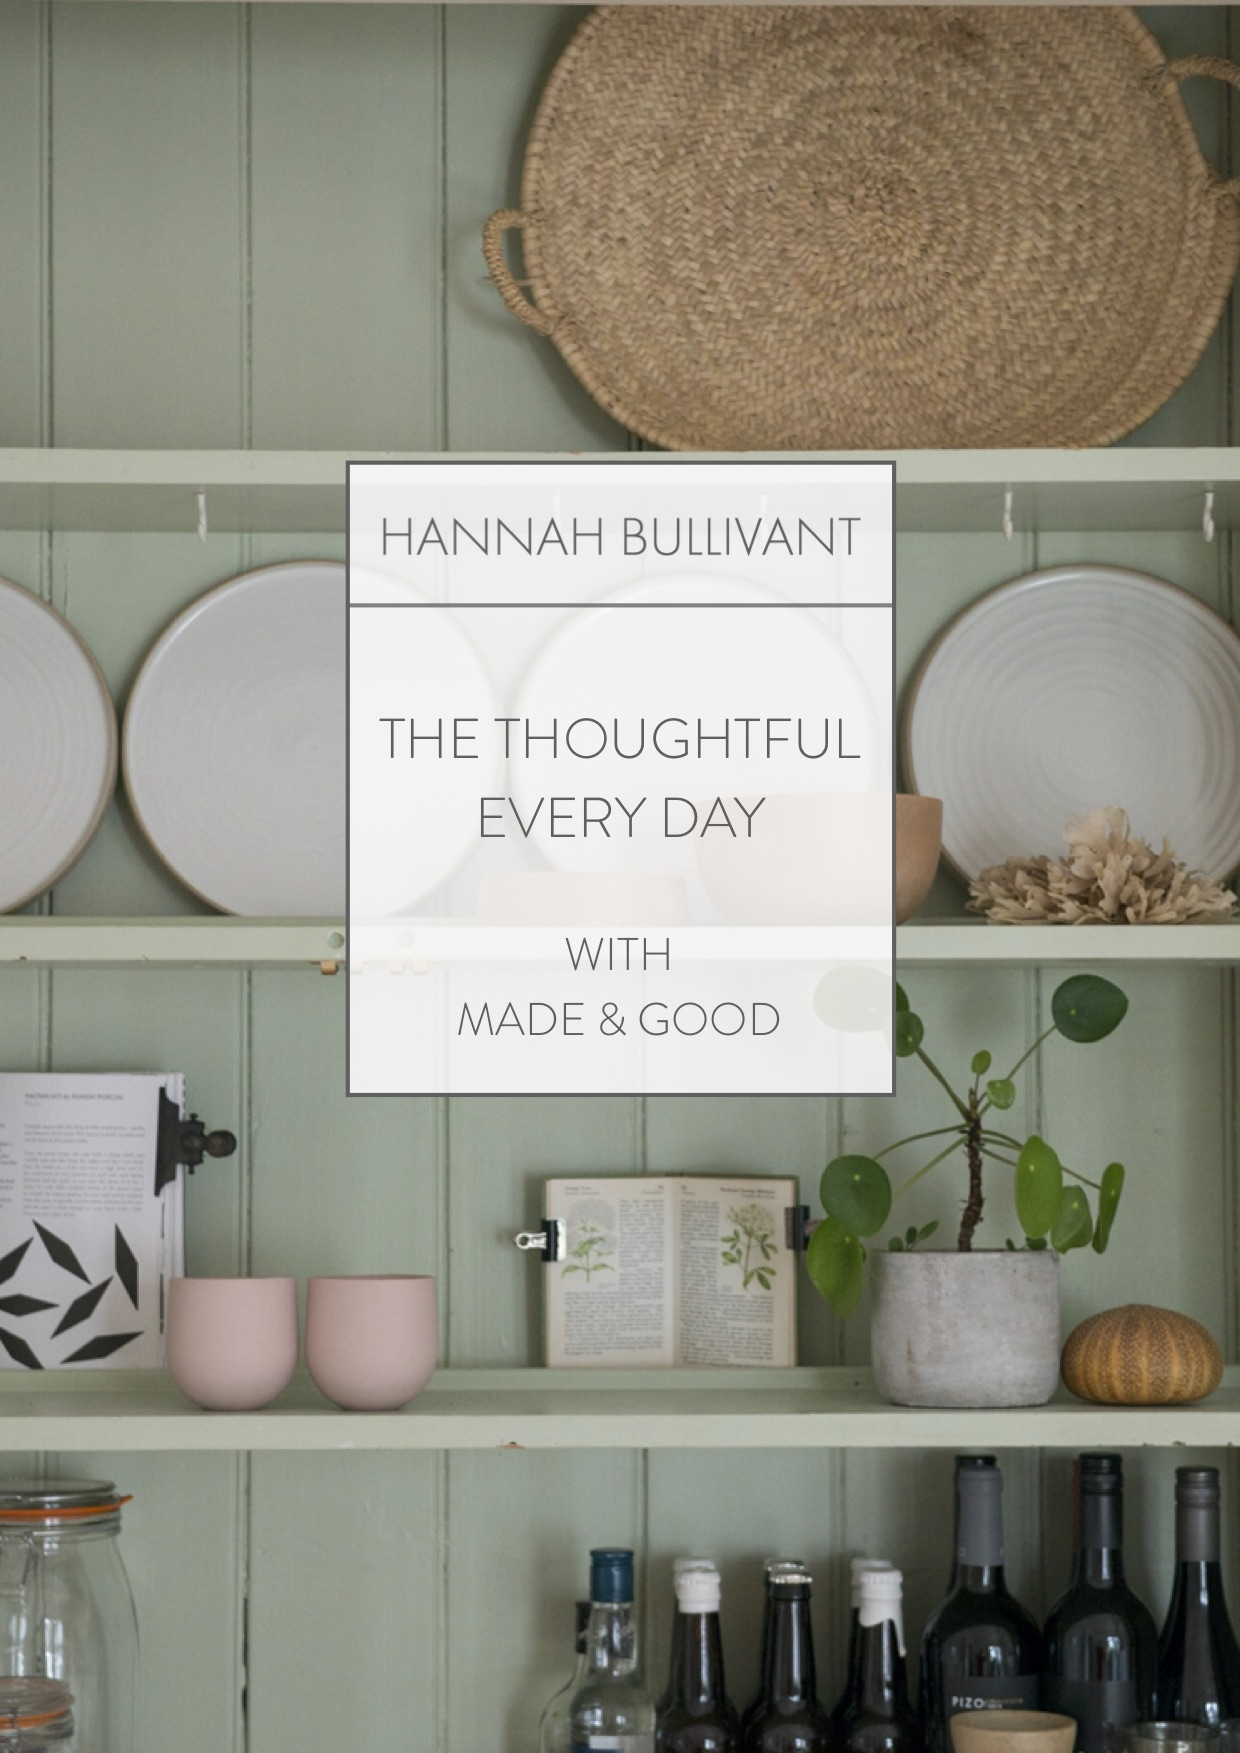 The Thoughtful Everyday with Made & Good | hannahbullivant.com